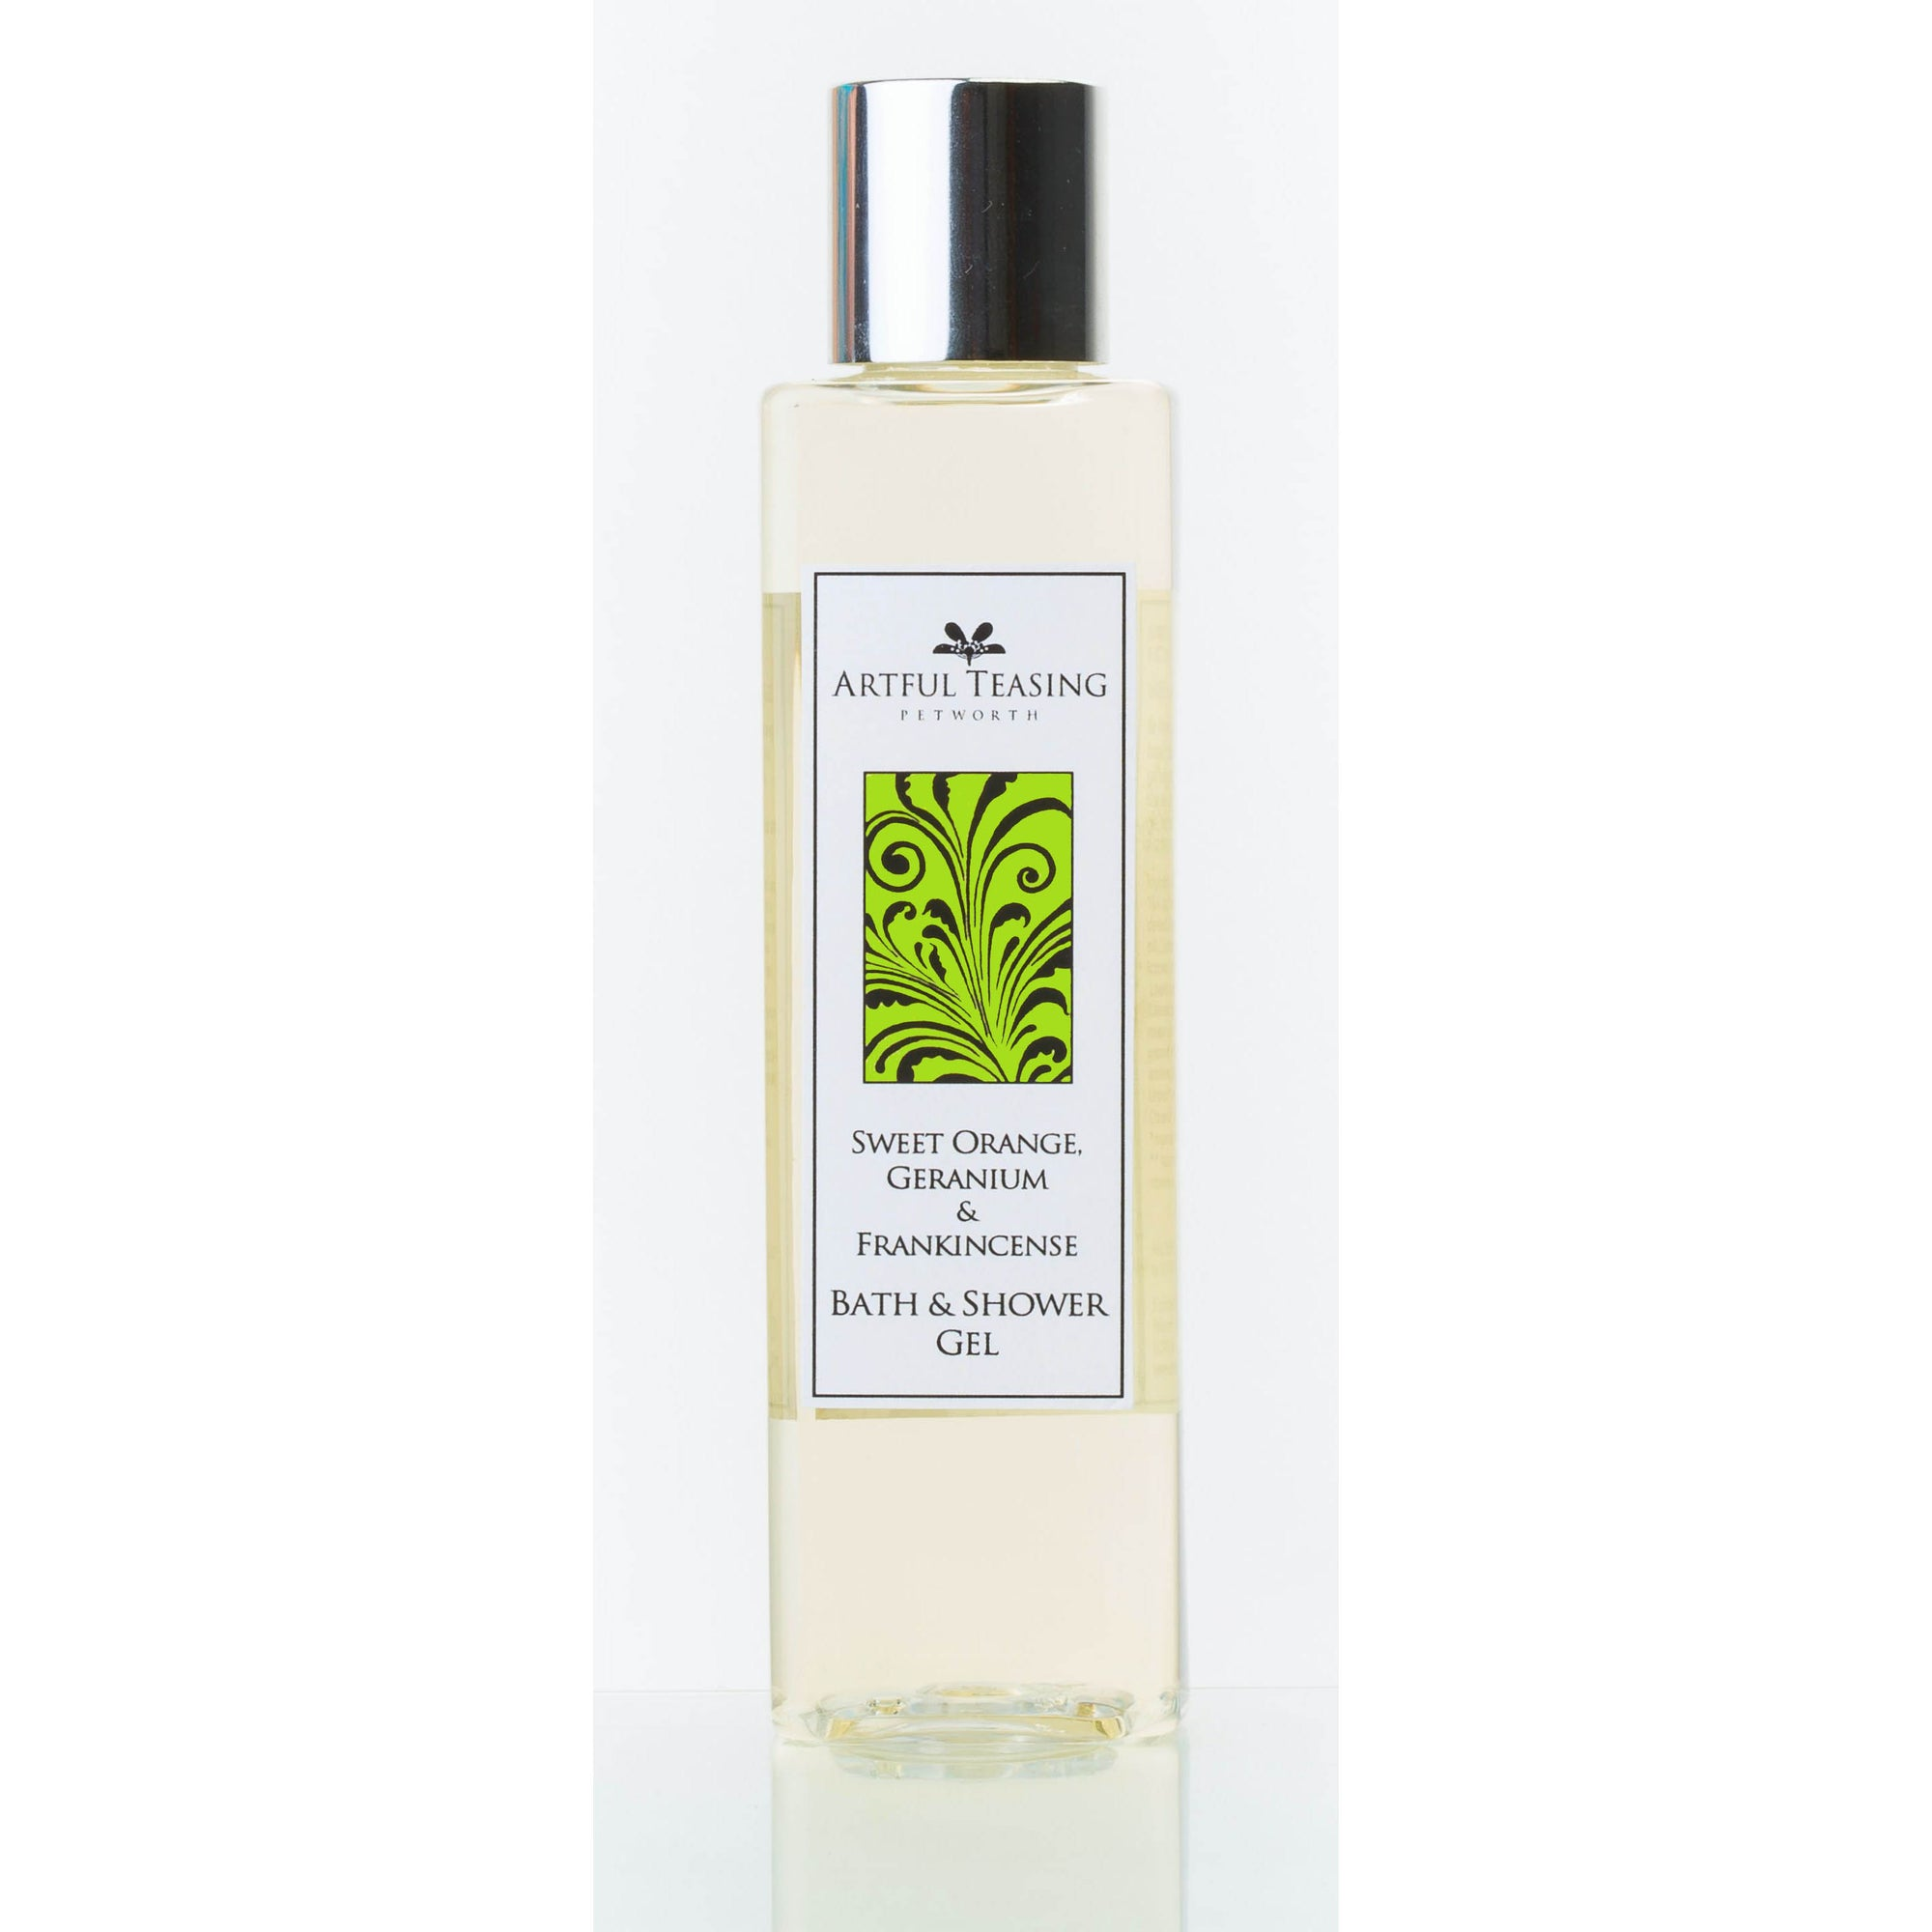 Sweet Orange, Geranium & Frankincense Bath & Shower Gel 200ml